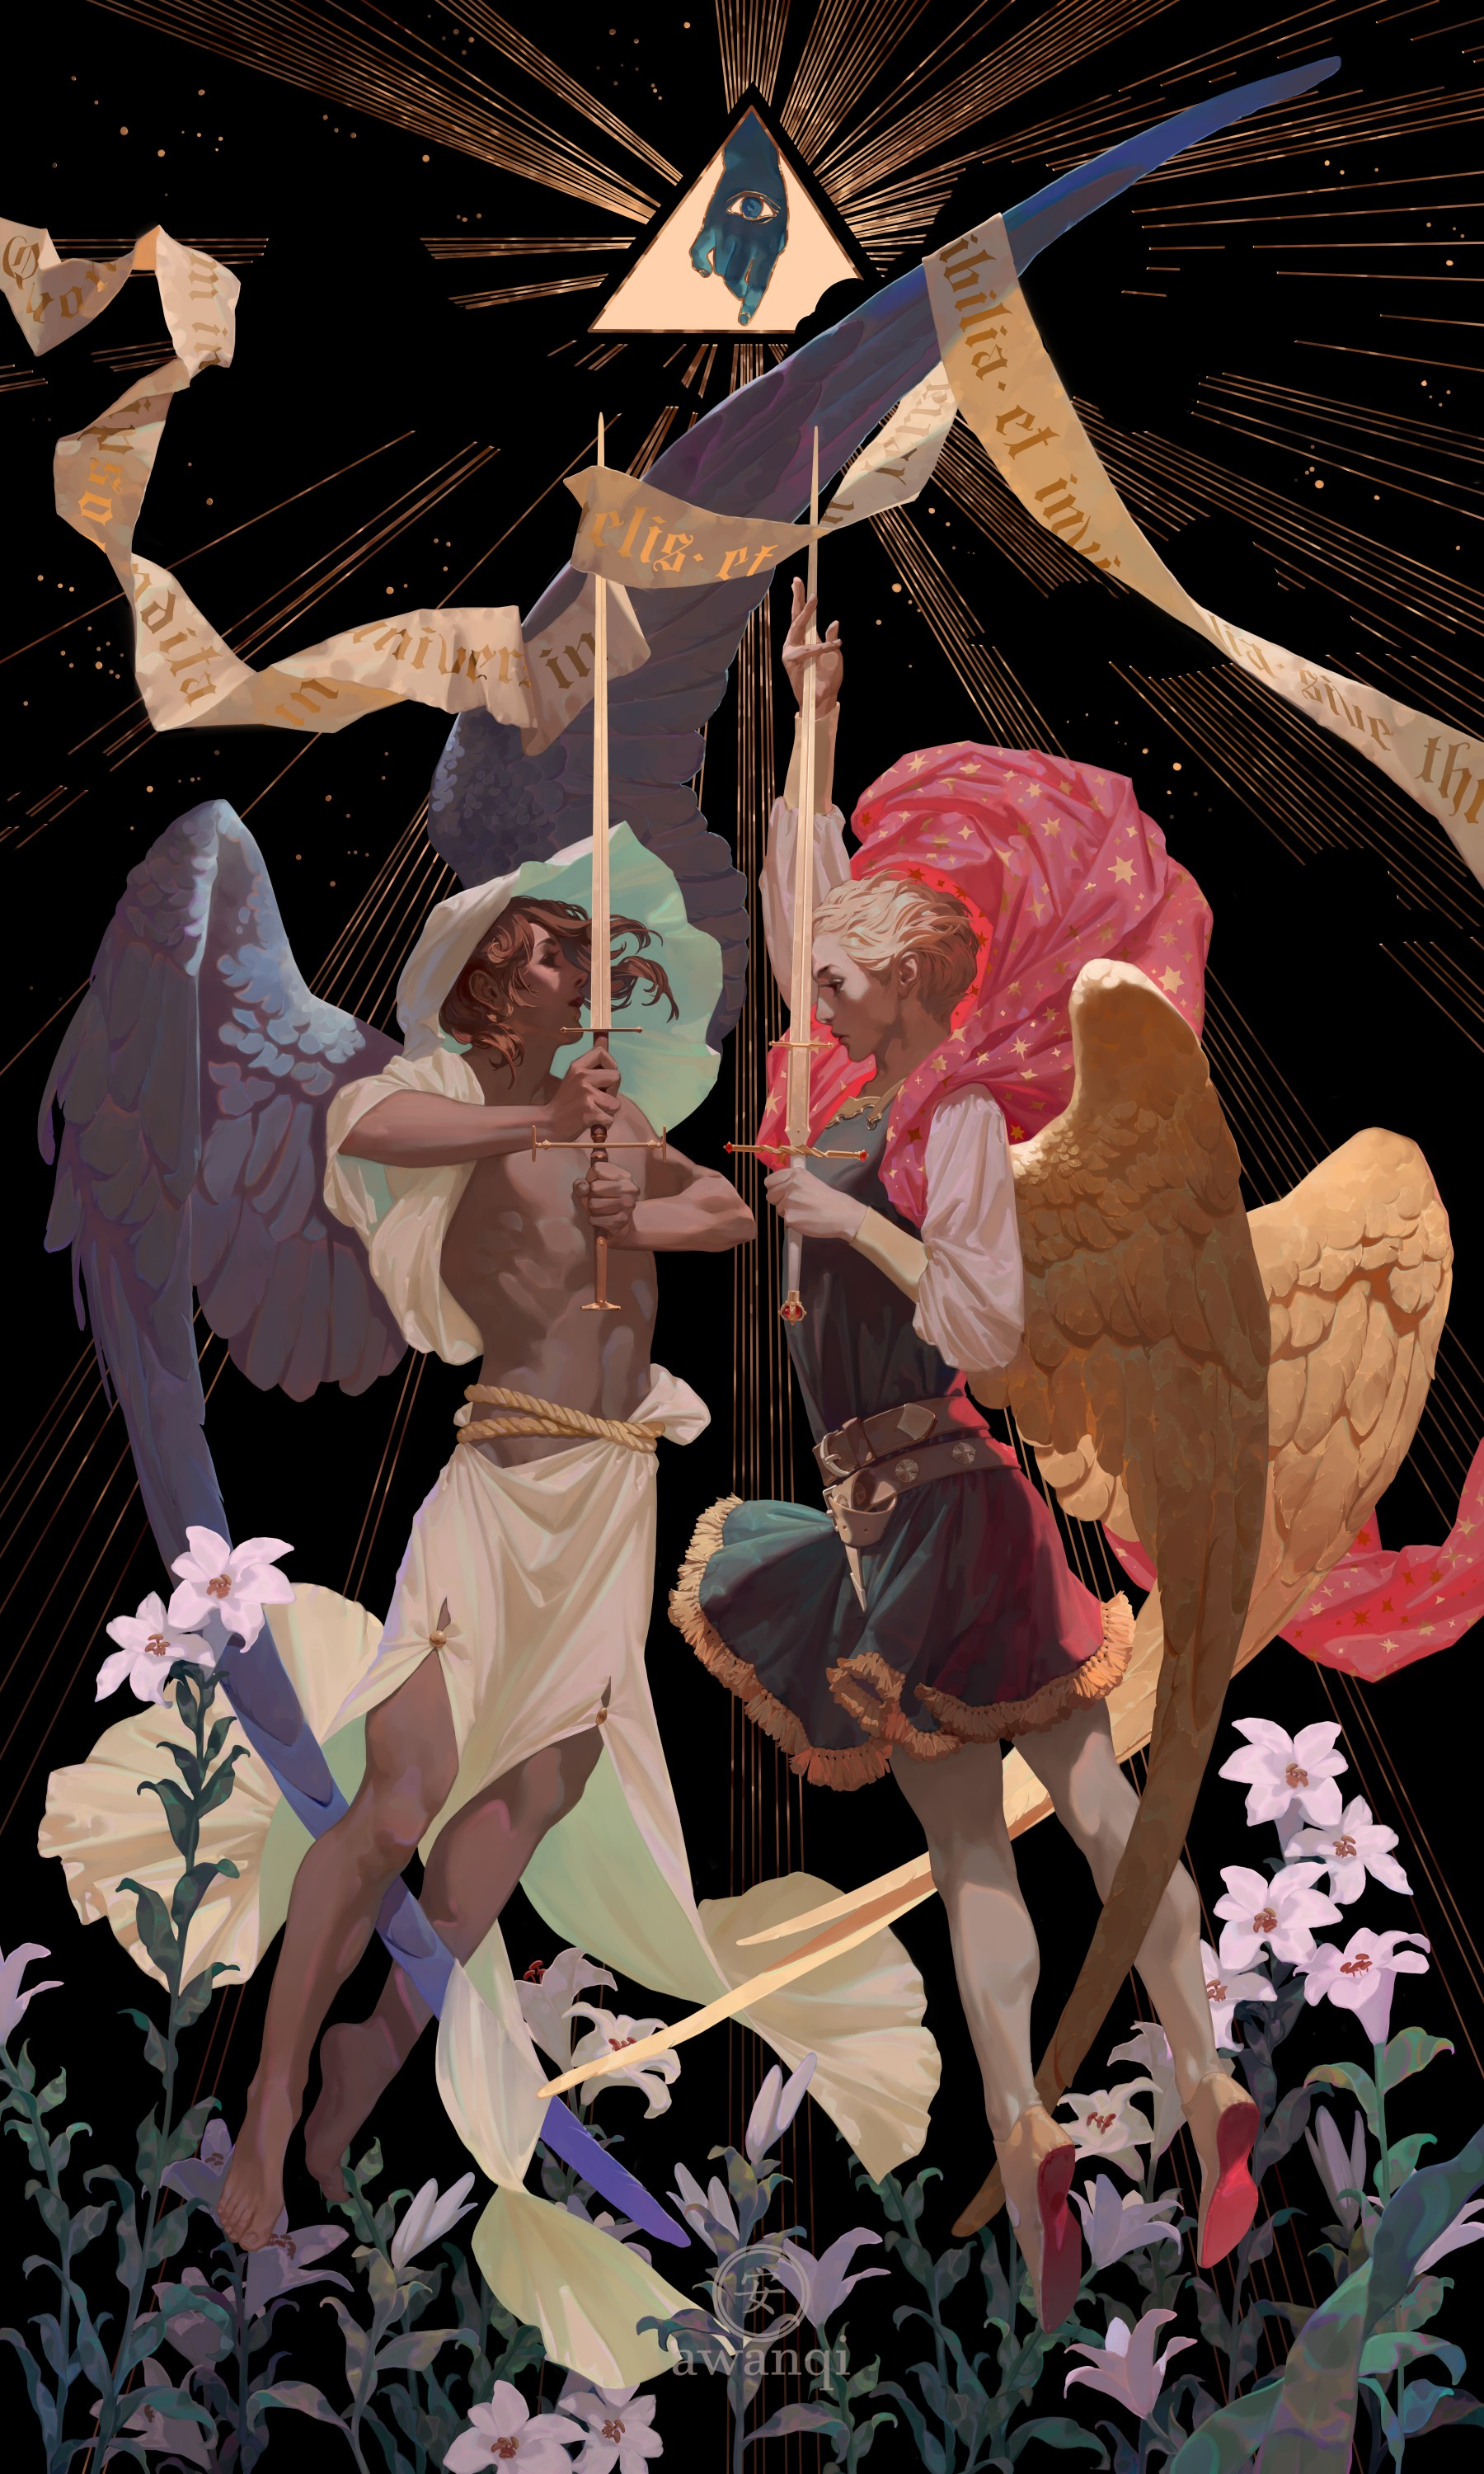 Two angels holding swords against a black background